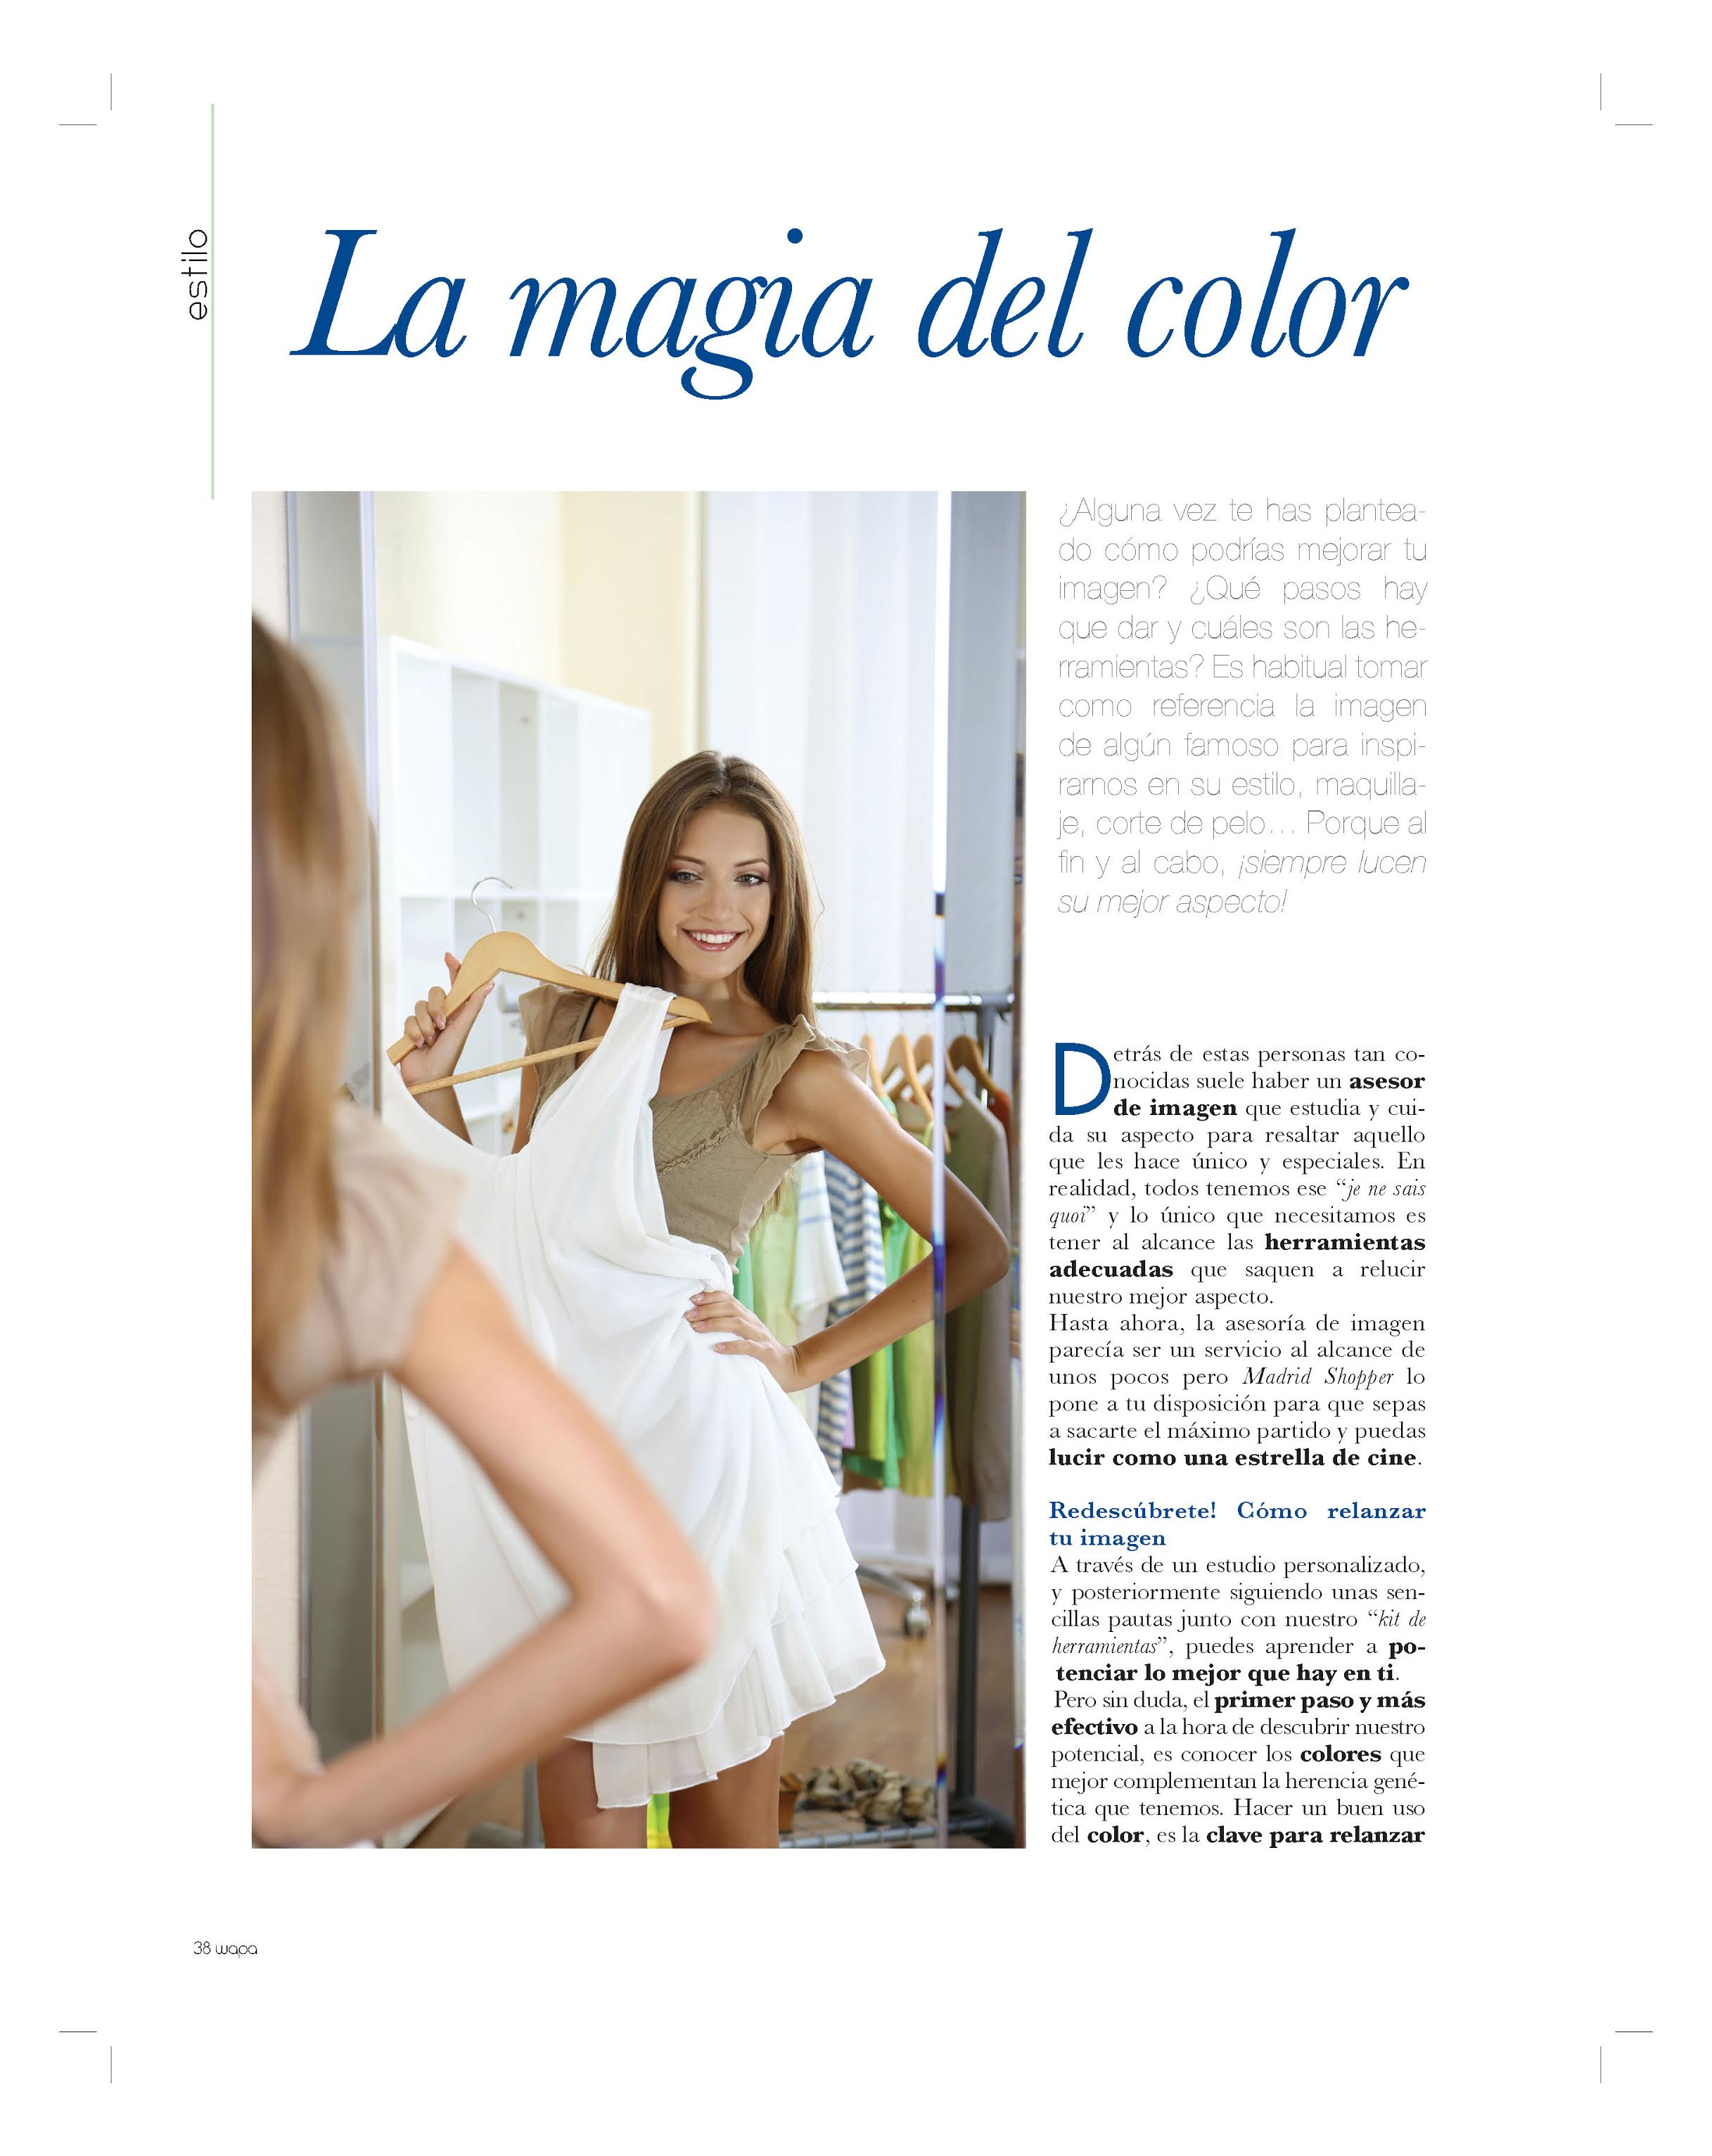 Wapa Magazine 48 – HOW TO BEAUTIFY YOUR IMAGE THROUGH THE MOST POWERFULL TOOL: THE COLOR   (spring 2015)